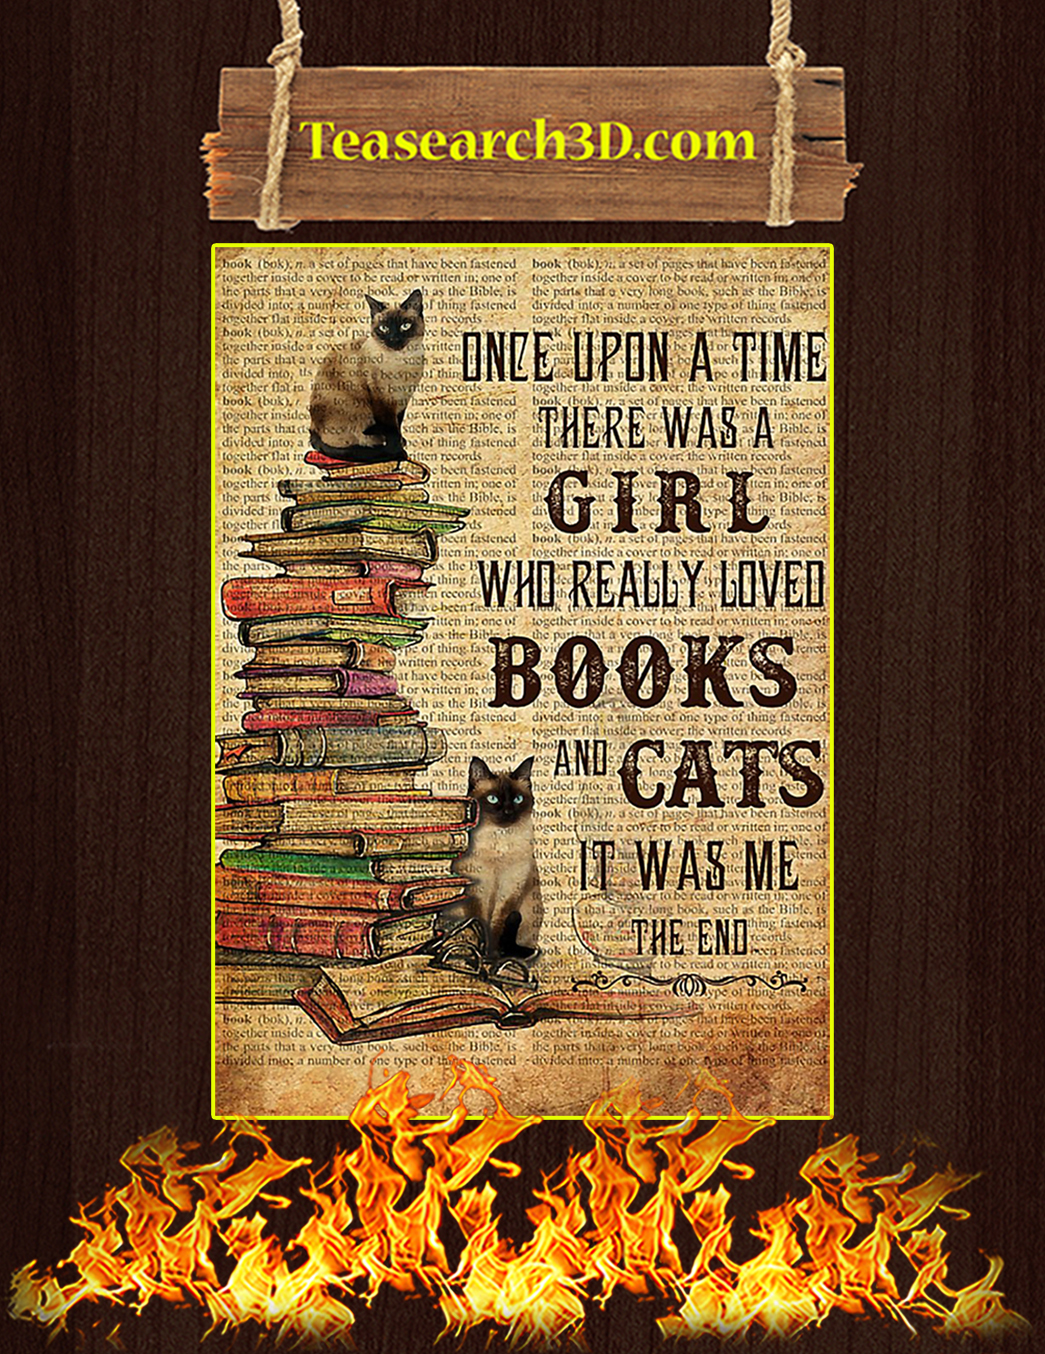 Siamese Once upon a time there was a girl who really loved books and cats A1